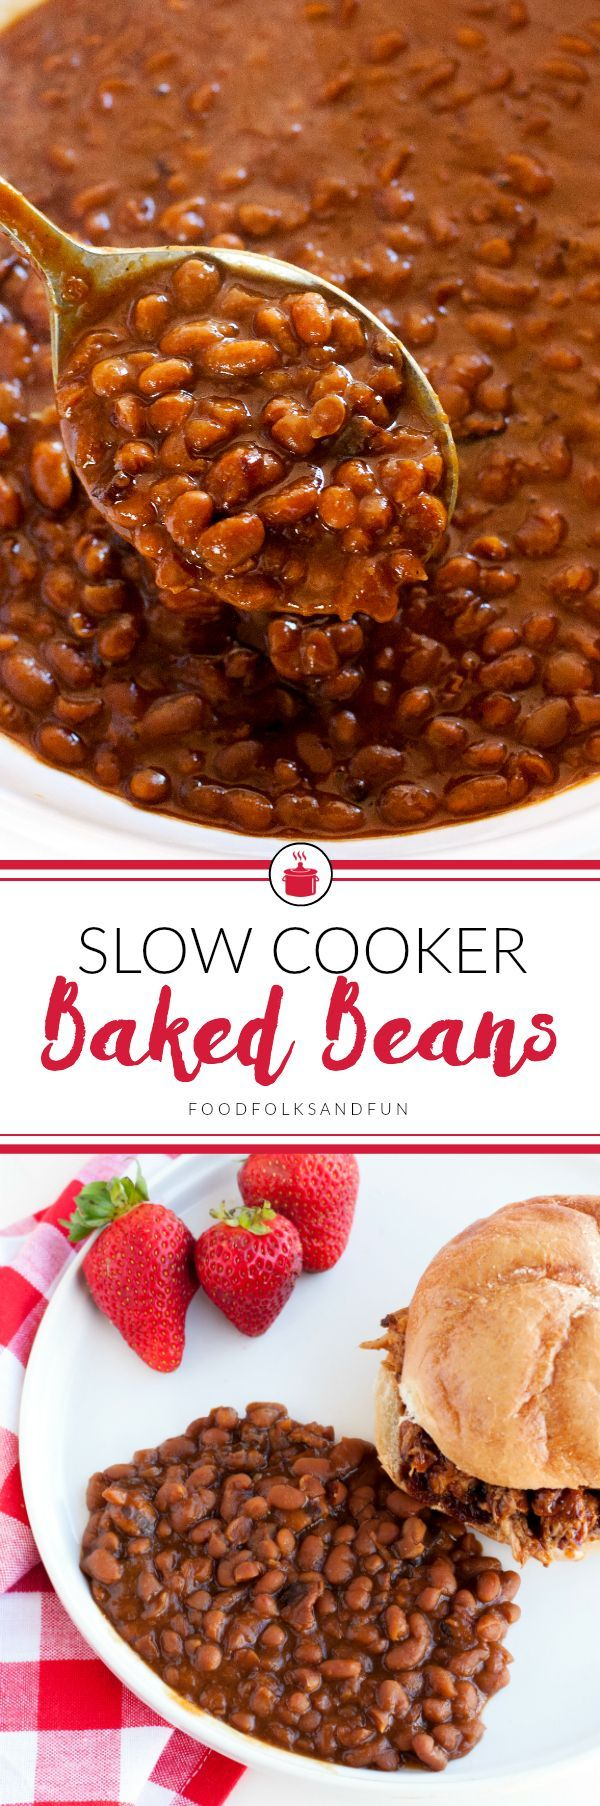 This Slow Cooker Boston Baked Beans recipe is everything baked beans should be: thick, saucy, savory with a touch of sweet. Come see how I made the classic Boston Baked Beans recipe easier by making it in the slow cooker! | Best Baked Beans | Easy Baked B